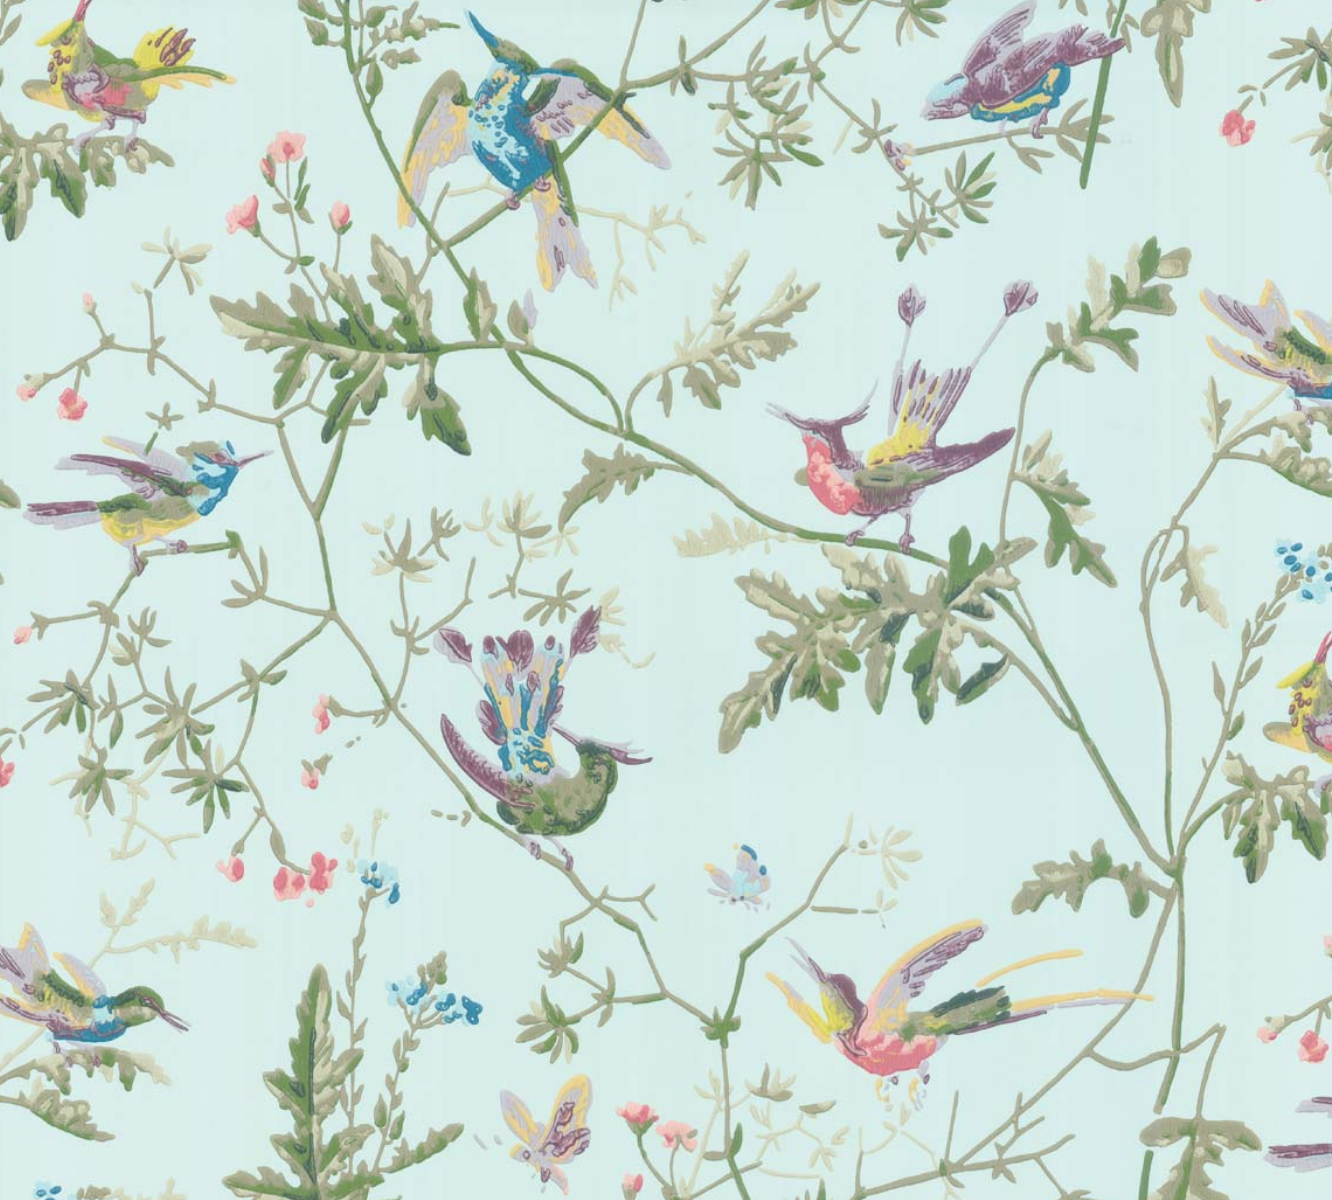 Hummingbirds by Cole & Son